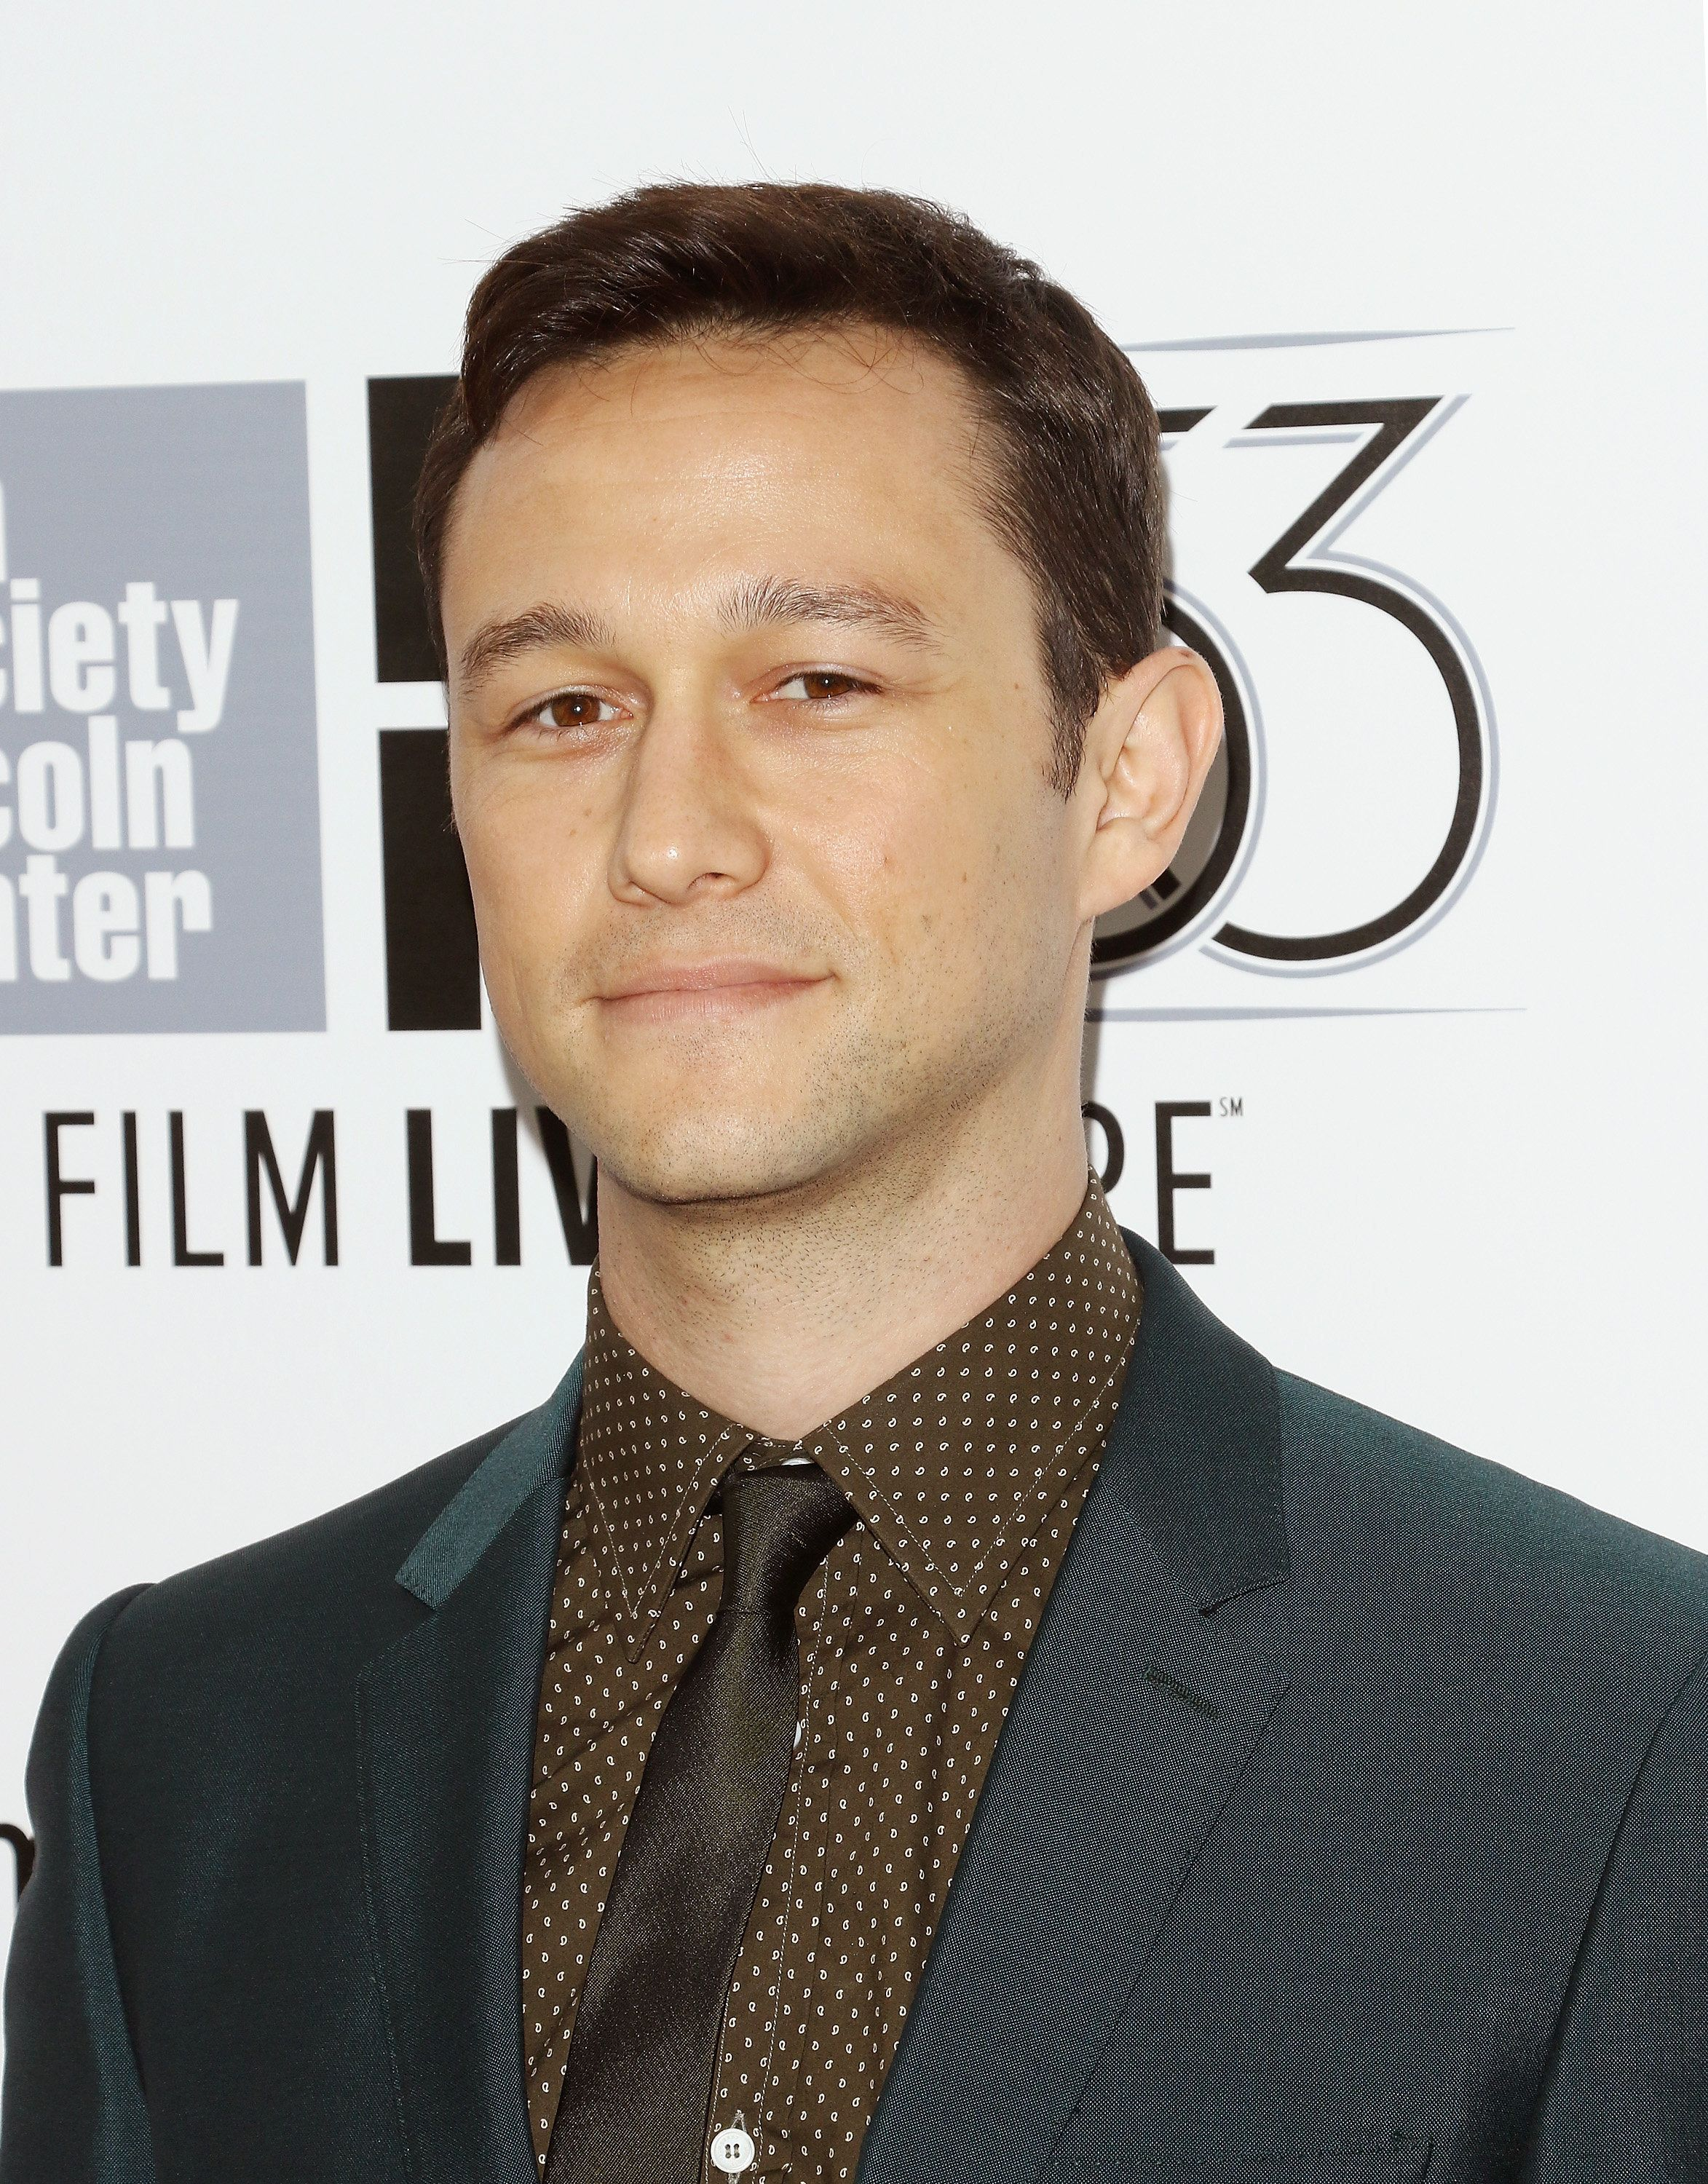 NEW YORK, NY - SEPTEMBER 26:  Actor Joseph Gordon-Levitt attends the 53rd New York Film Festival - opening night gala presentation and 'The Walk' world premiere at Alice Tully Hall at Lincoln Center on September 26, 2015 in New York City.  (Photo by Jim Spellman/WireImage)